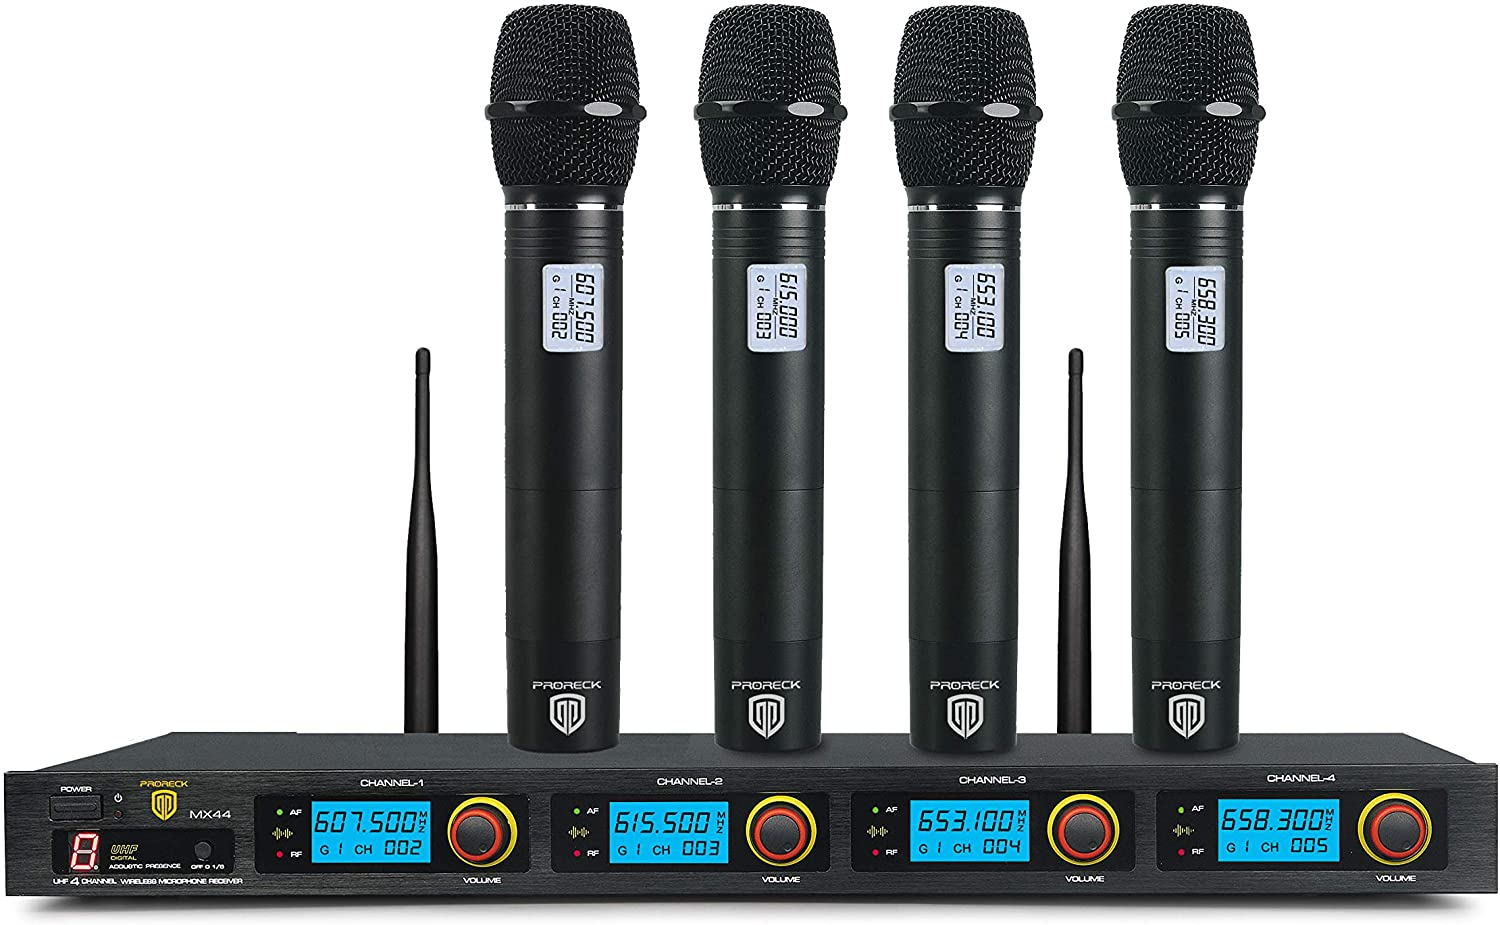 PRORECK MX44 Wireless Microphone